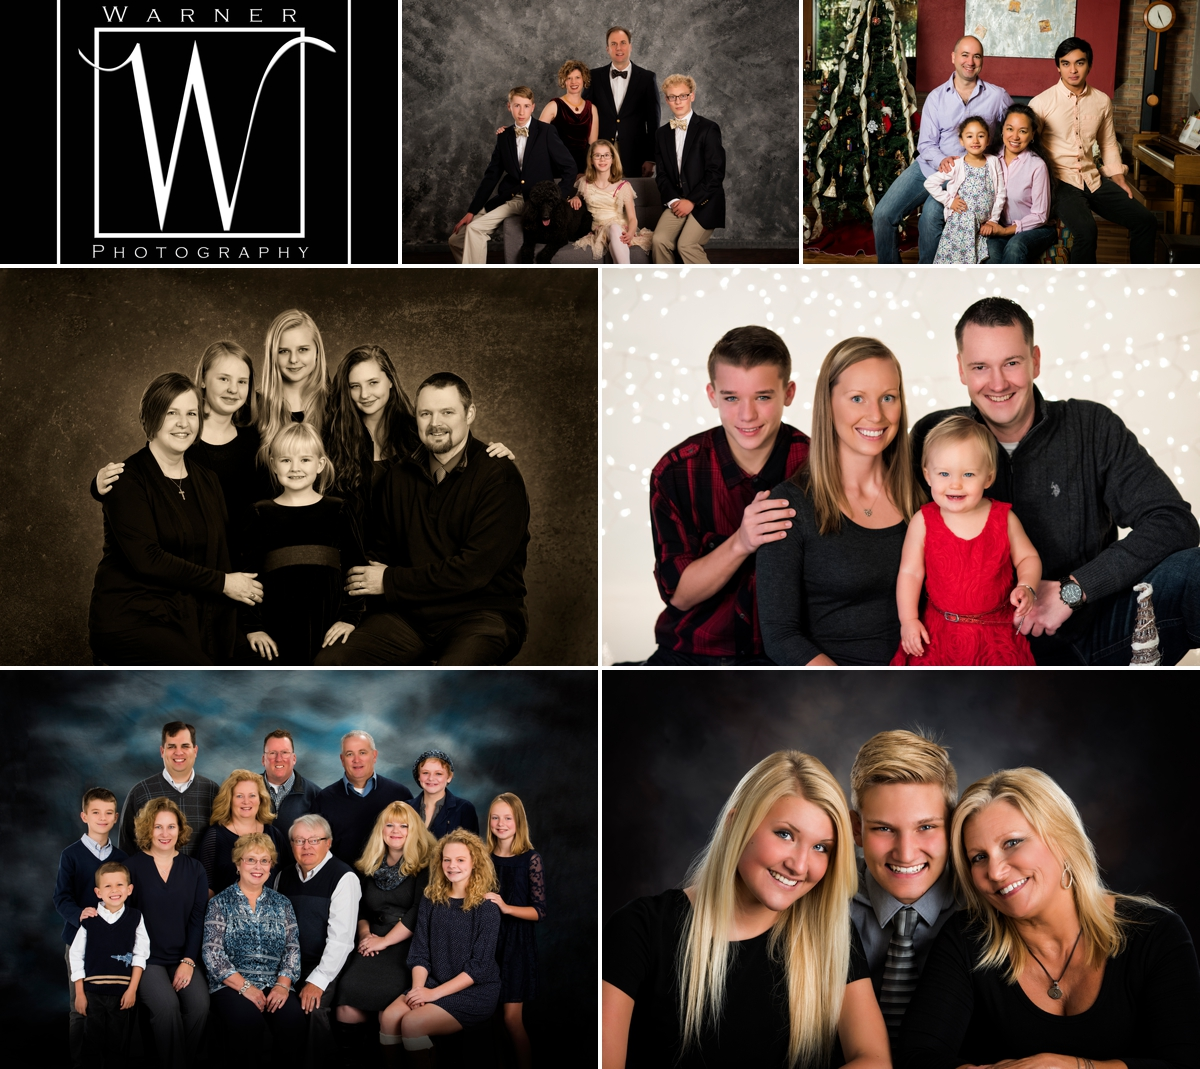 Holiday-special-portraits-warner-photography-midland-michigan